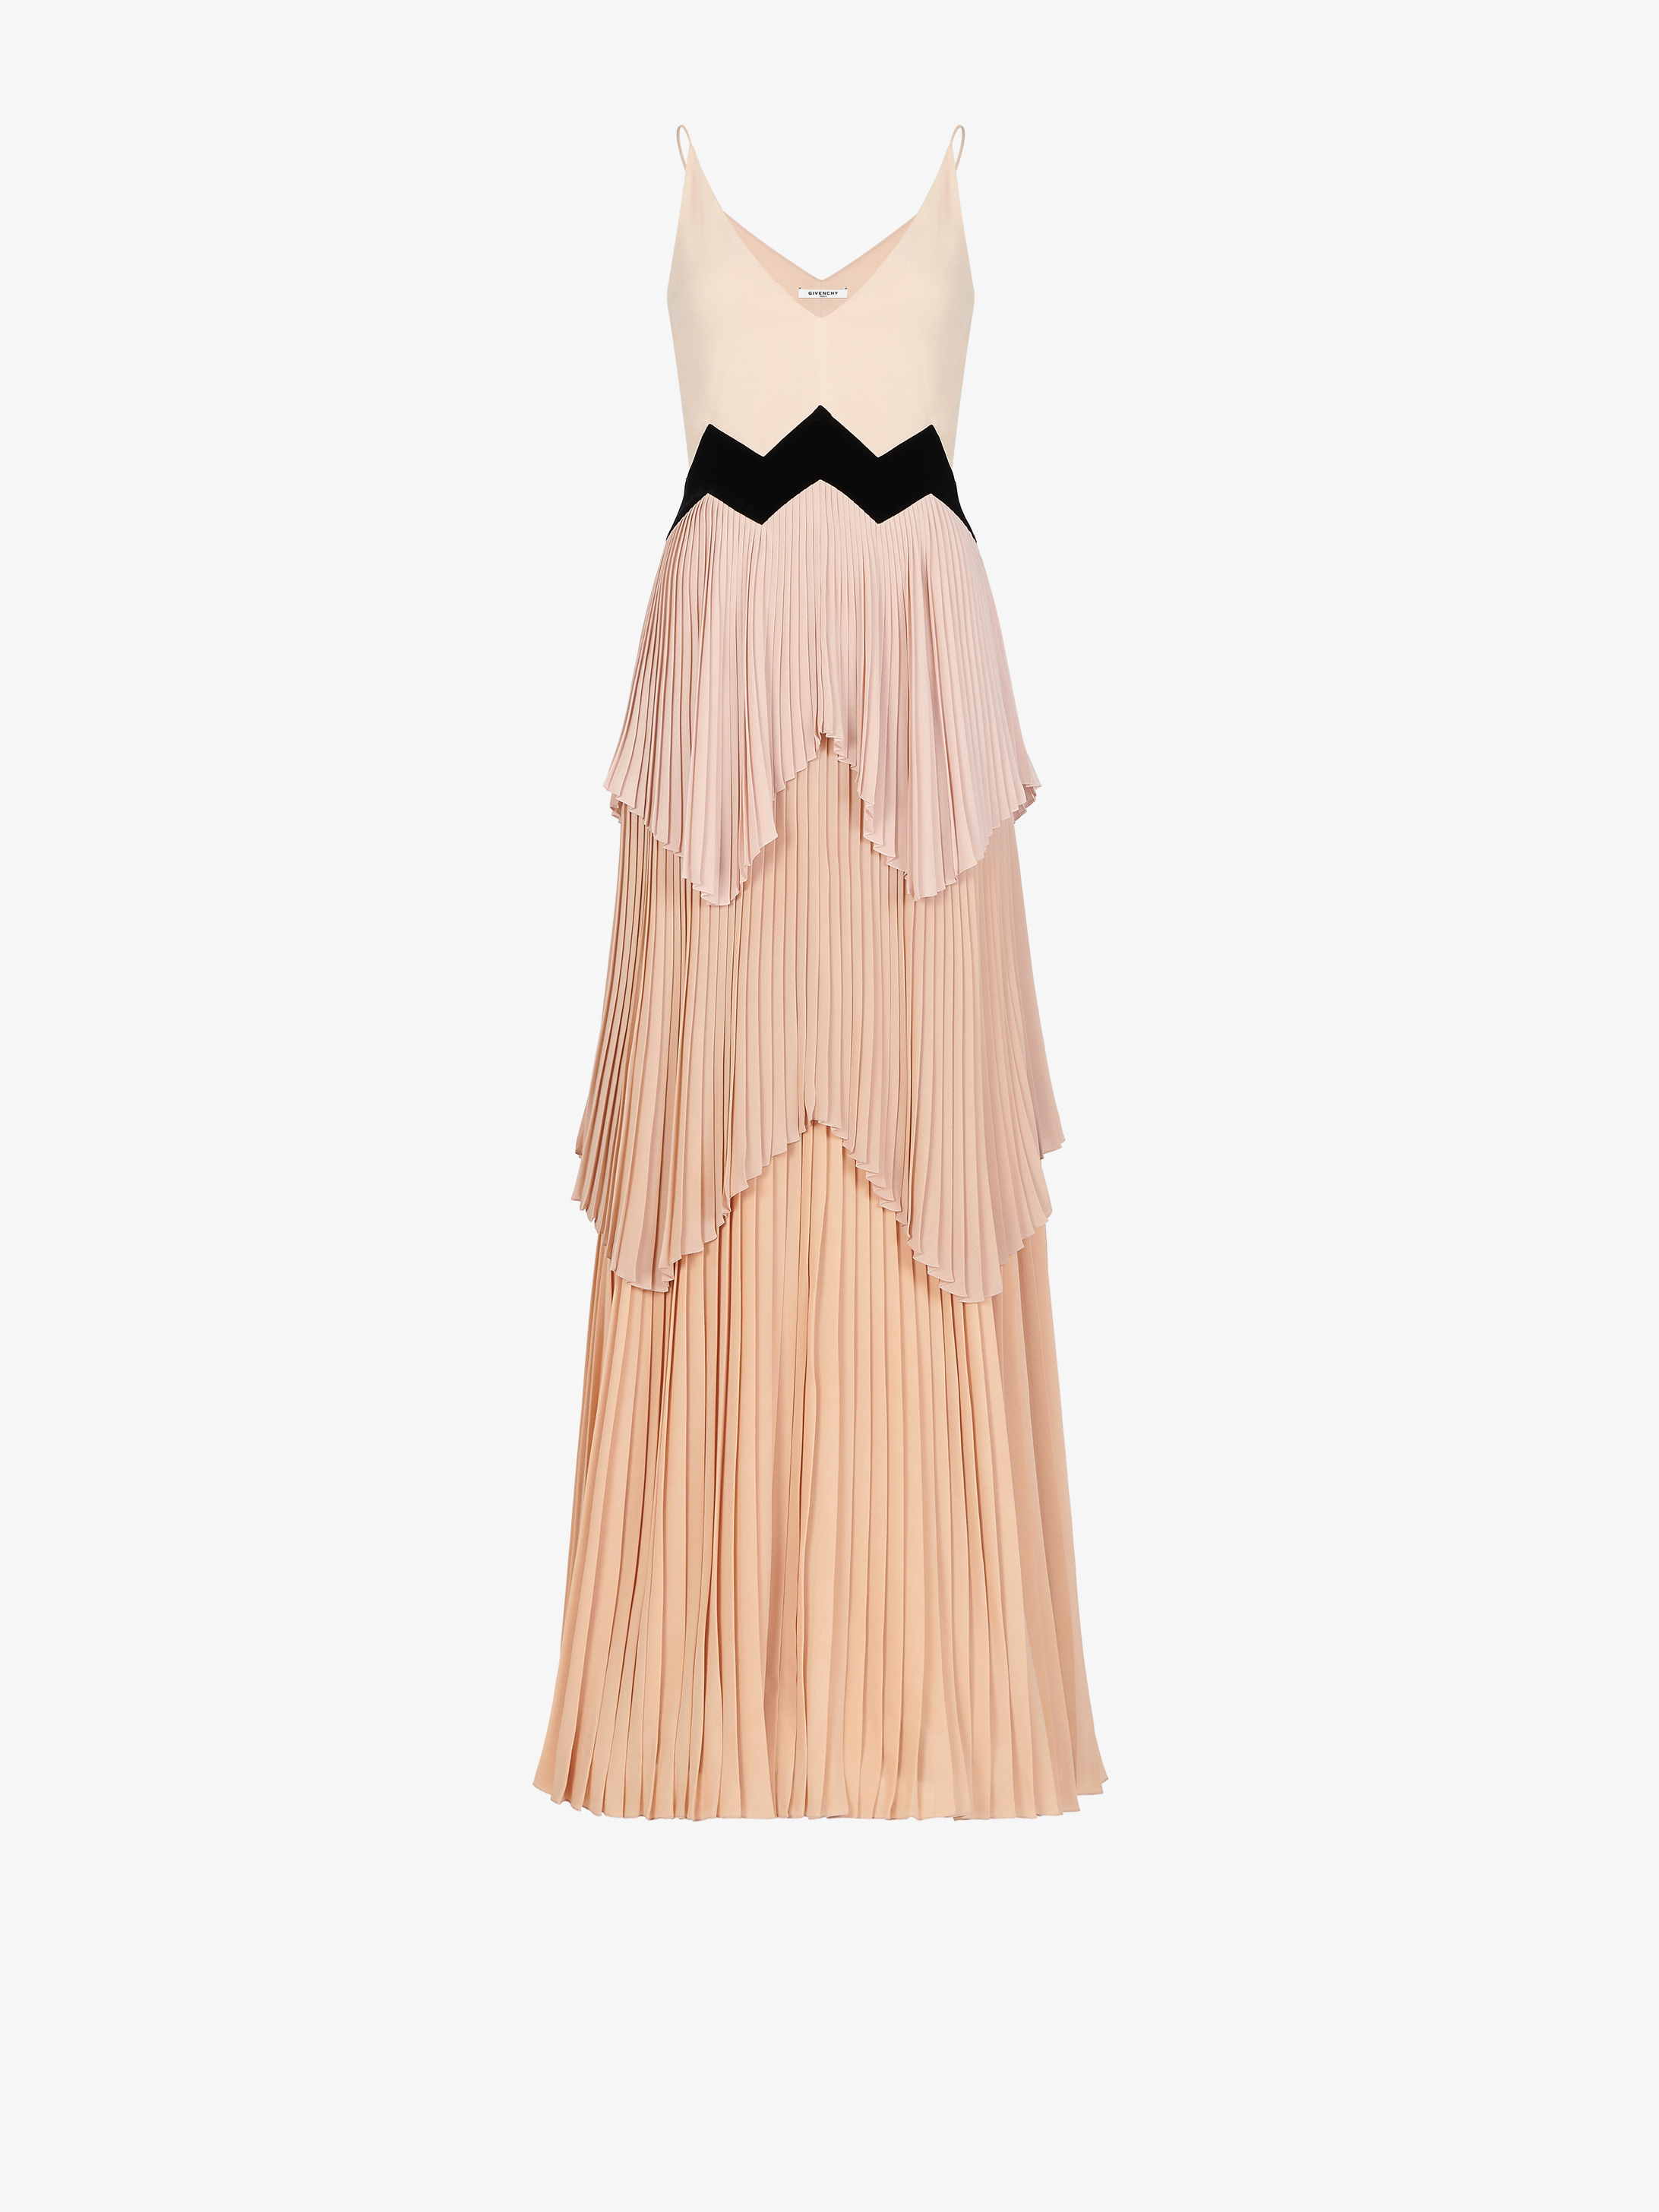 Long V neck dress with pleated layer skirt